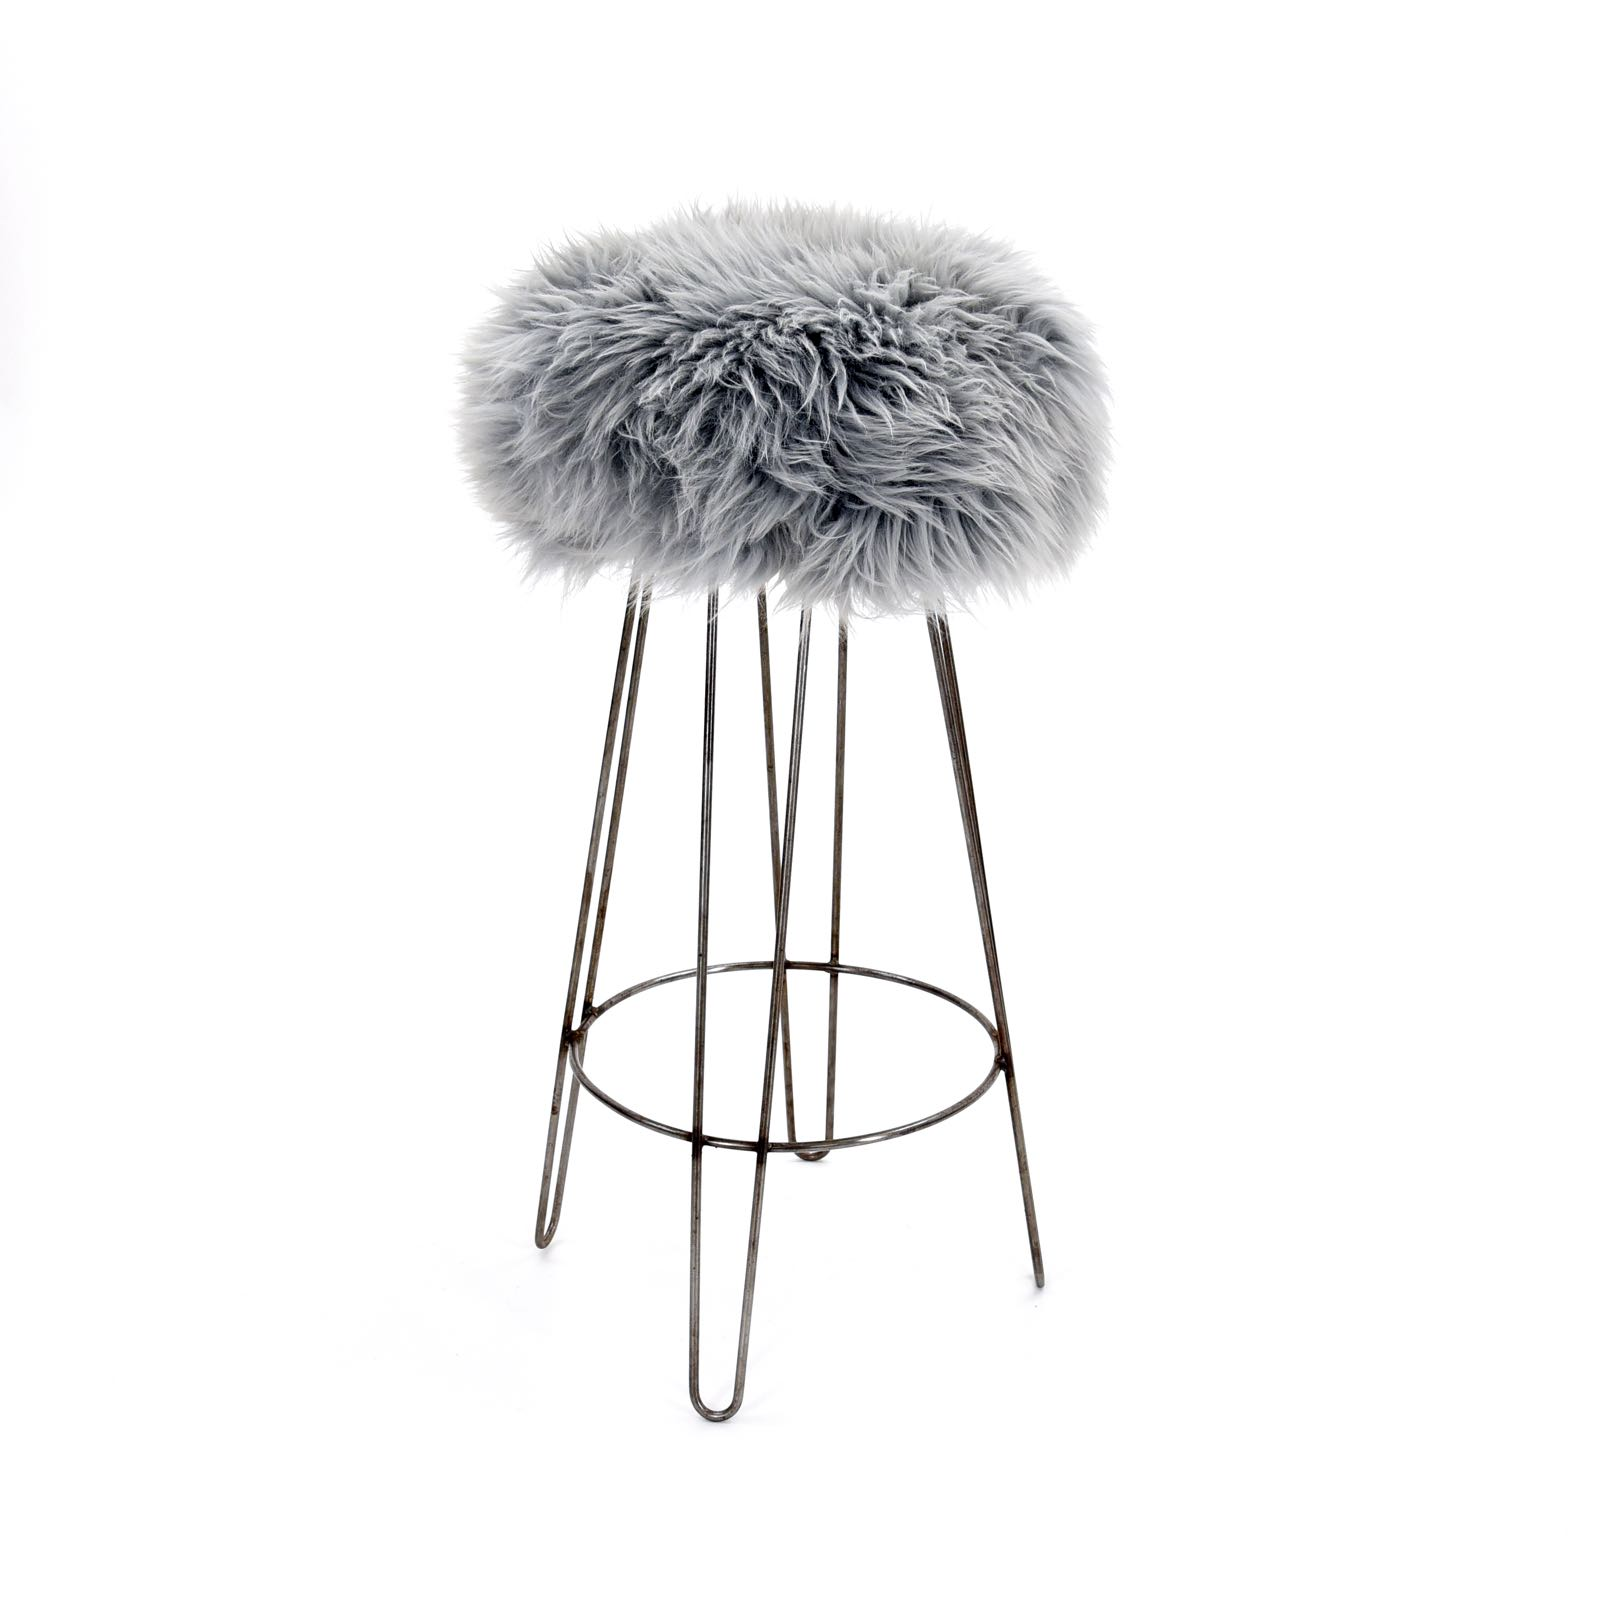 Baa Stool Griff in silver sheepskin 82cm high